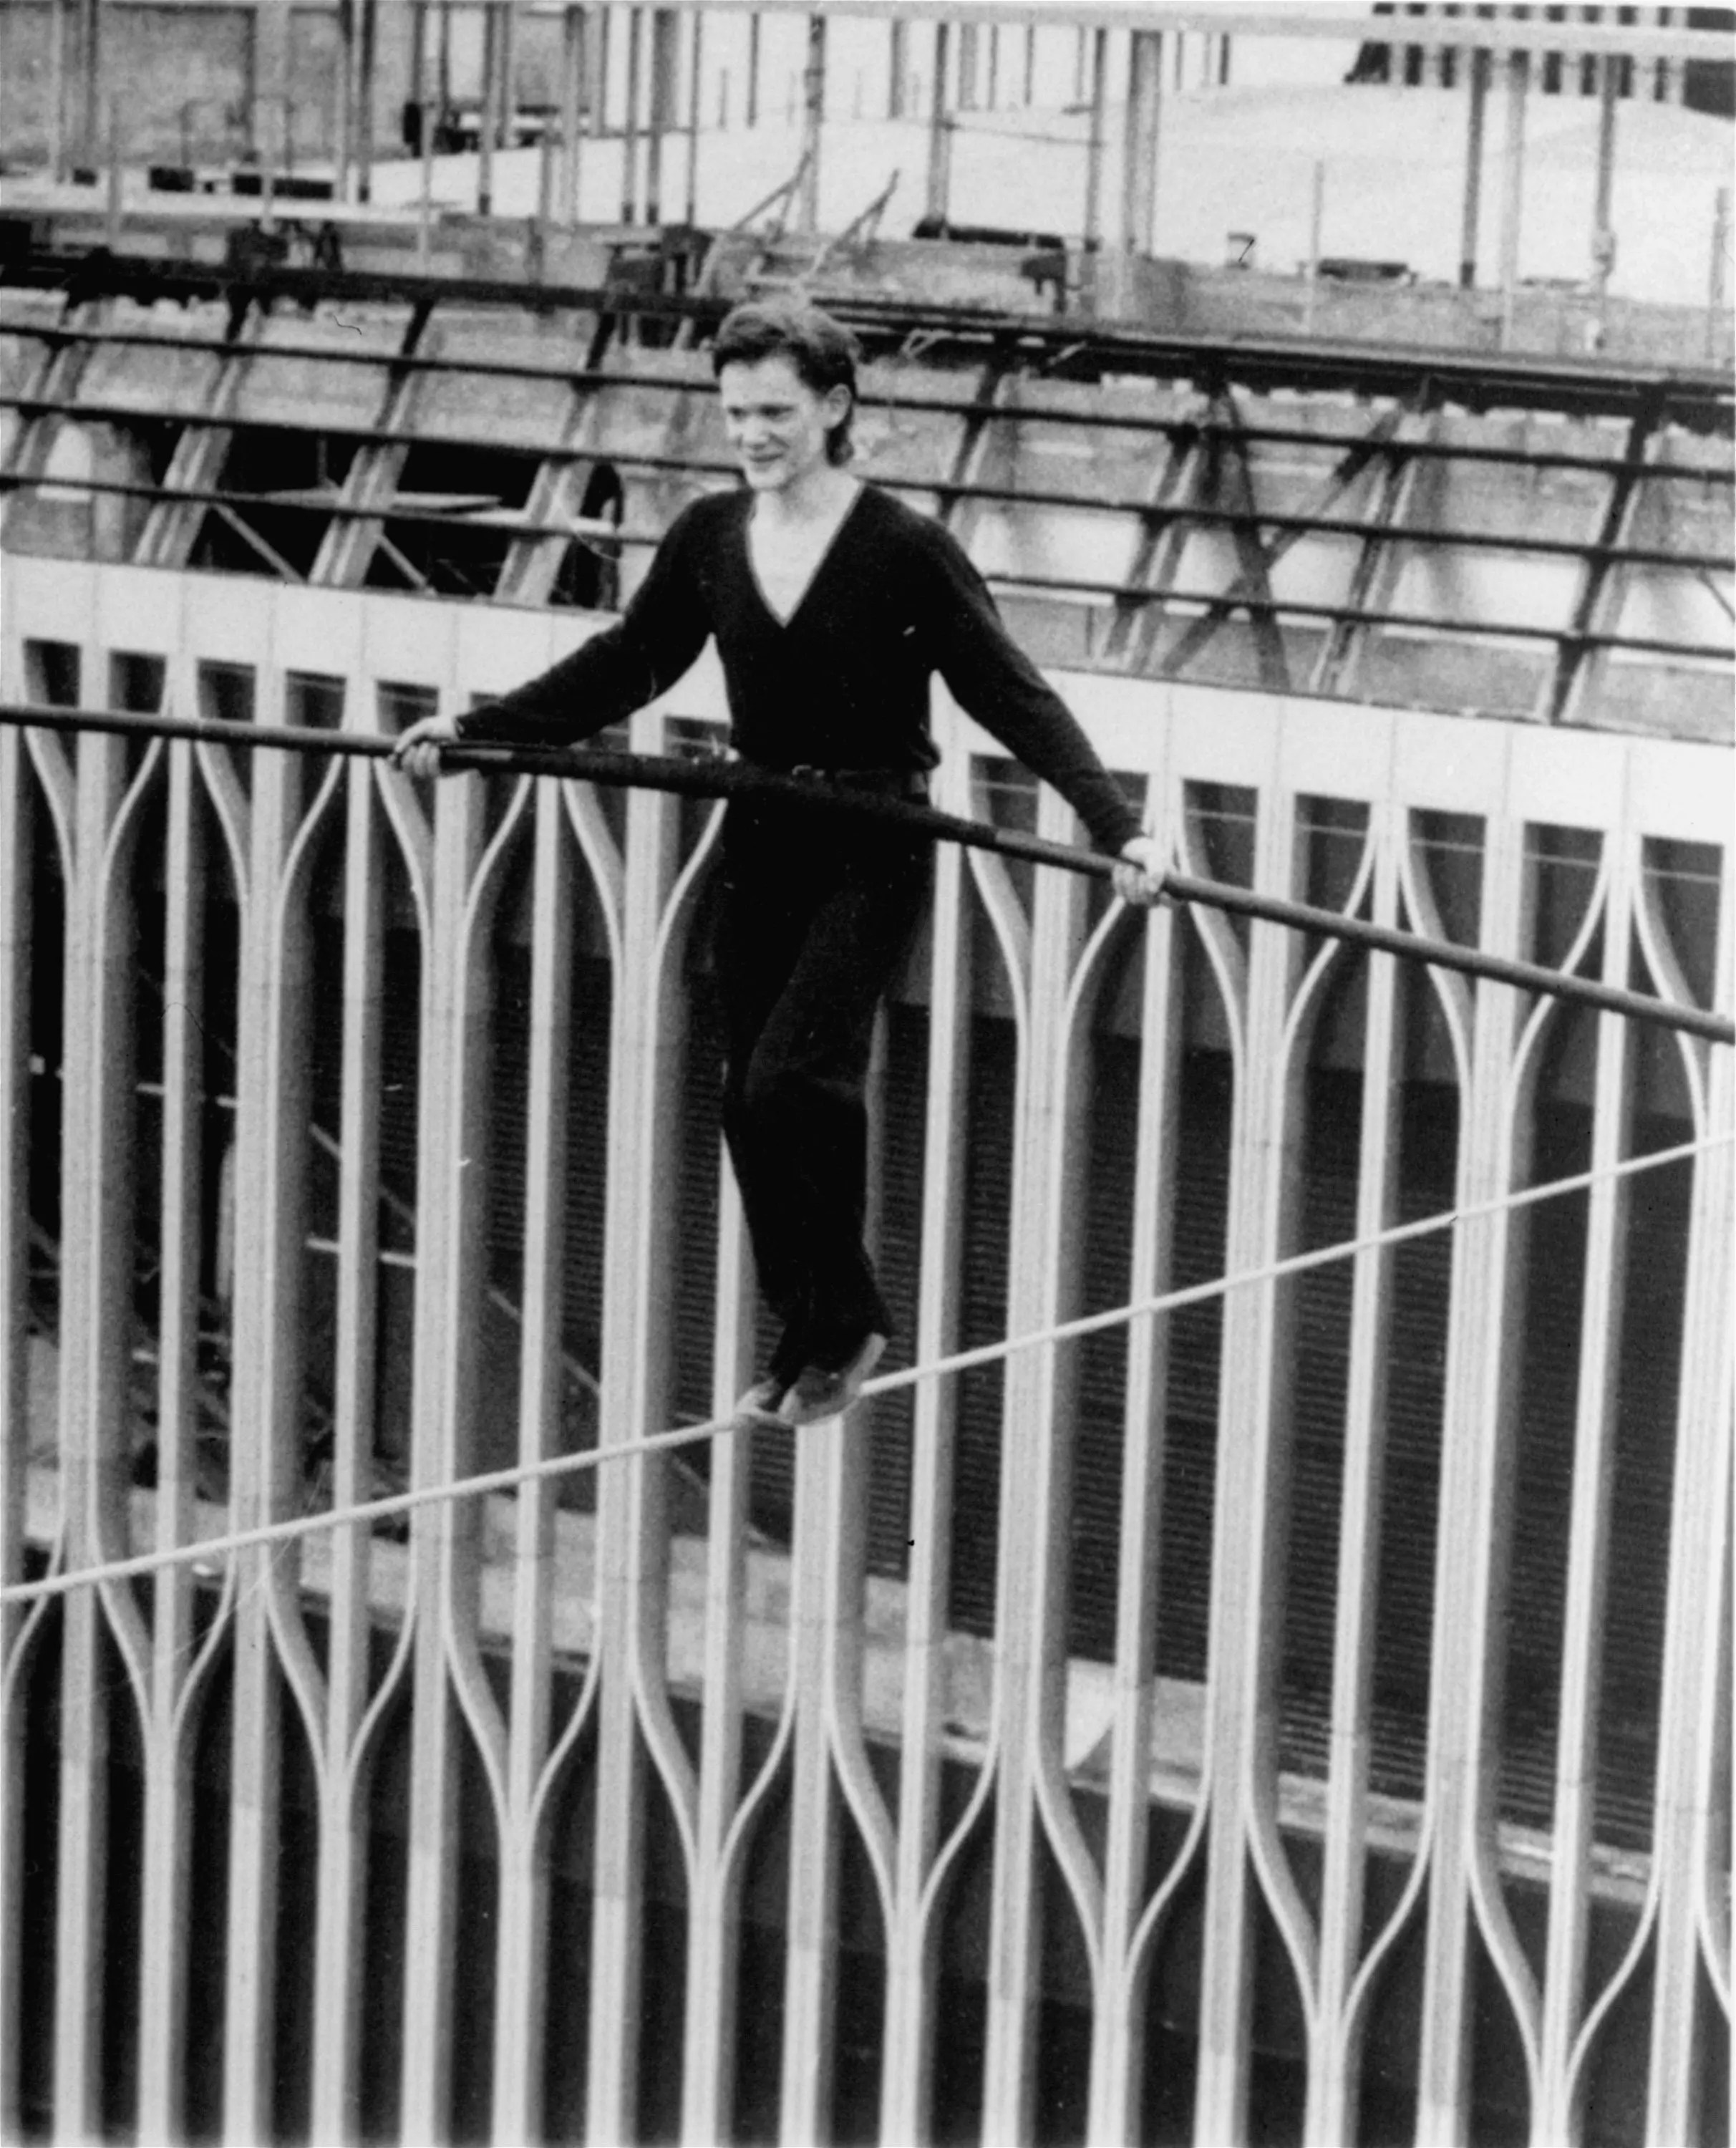 Philippe Petit Walked Across Twin Towers 41 Years Ago